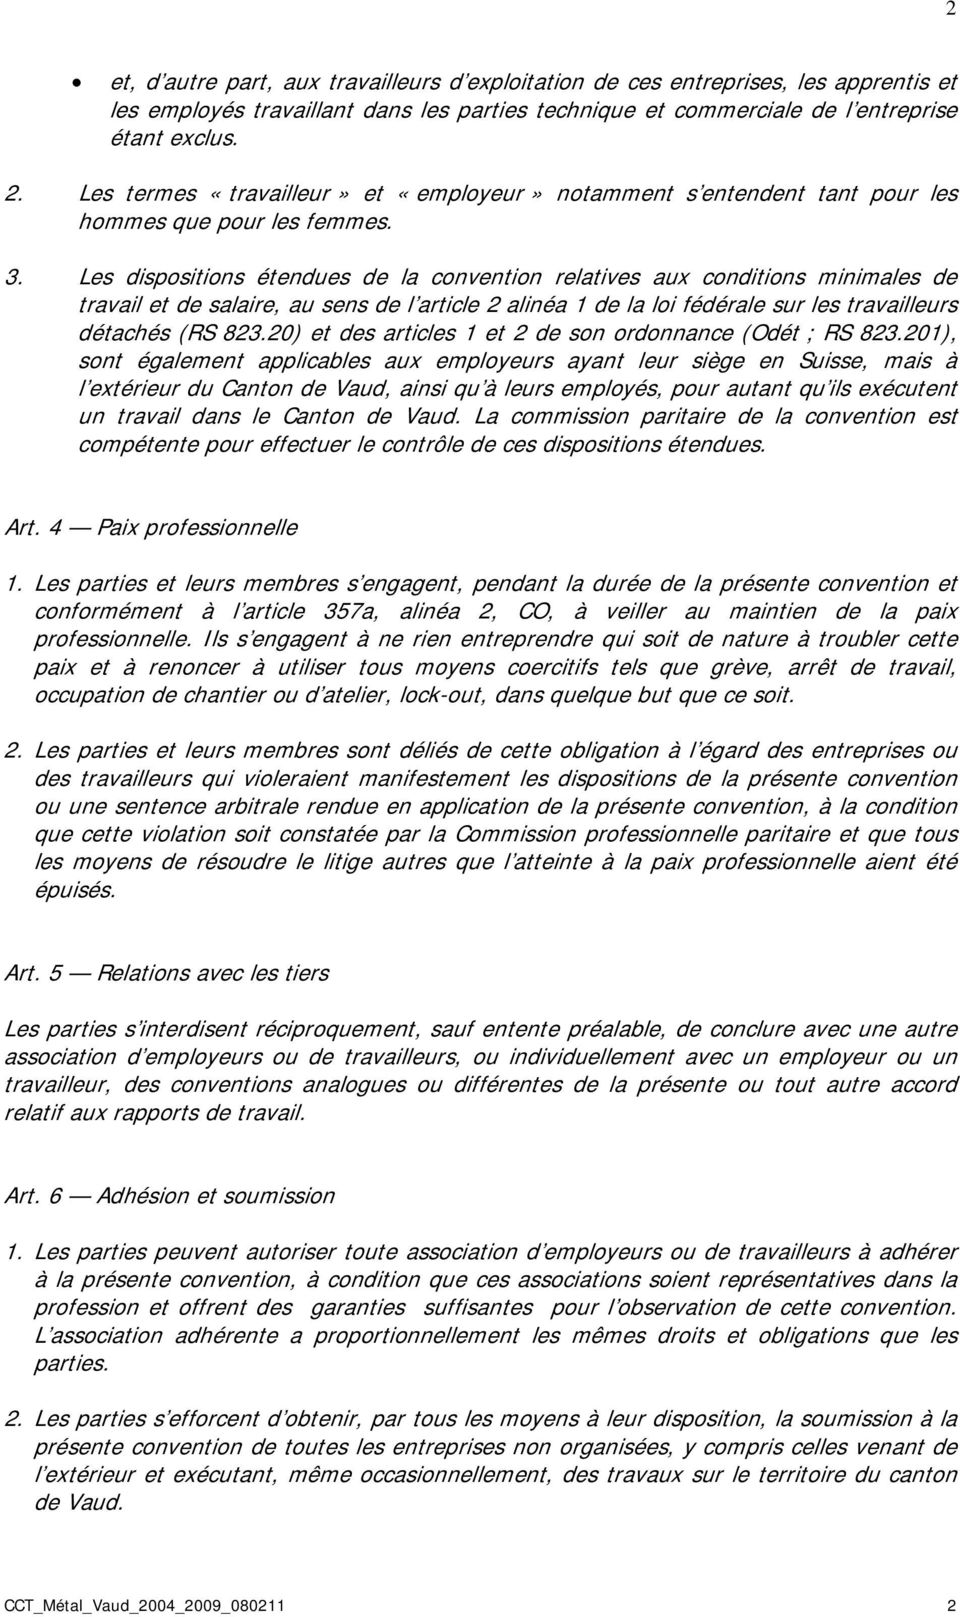 Les dispositions étendues de la convention relatives aux conditions minimales de travail et de salaire, au sens de l article 2 alinéa 1 de la loi fédérale sur les travailleurs détachés (RS 823.